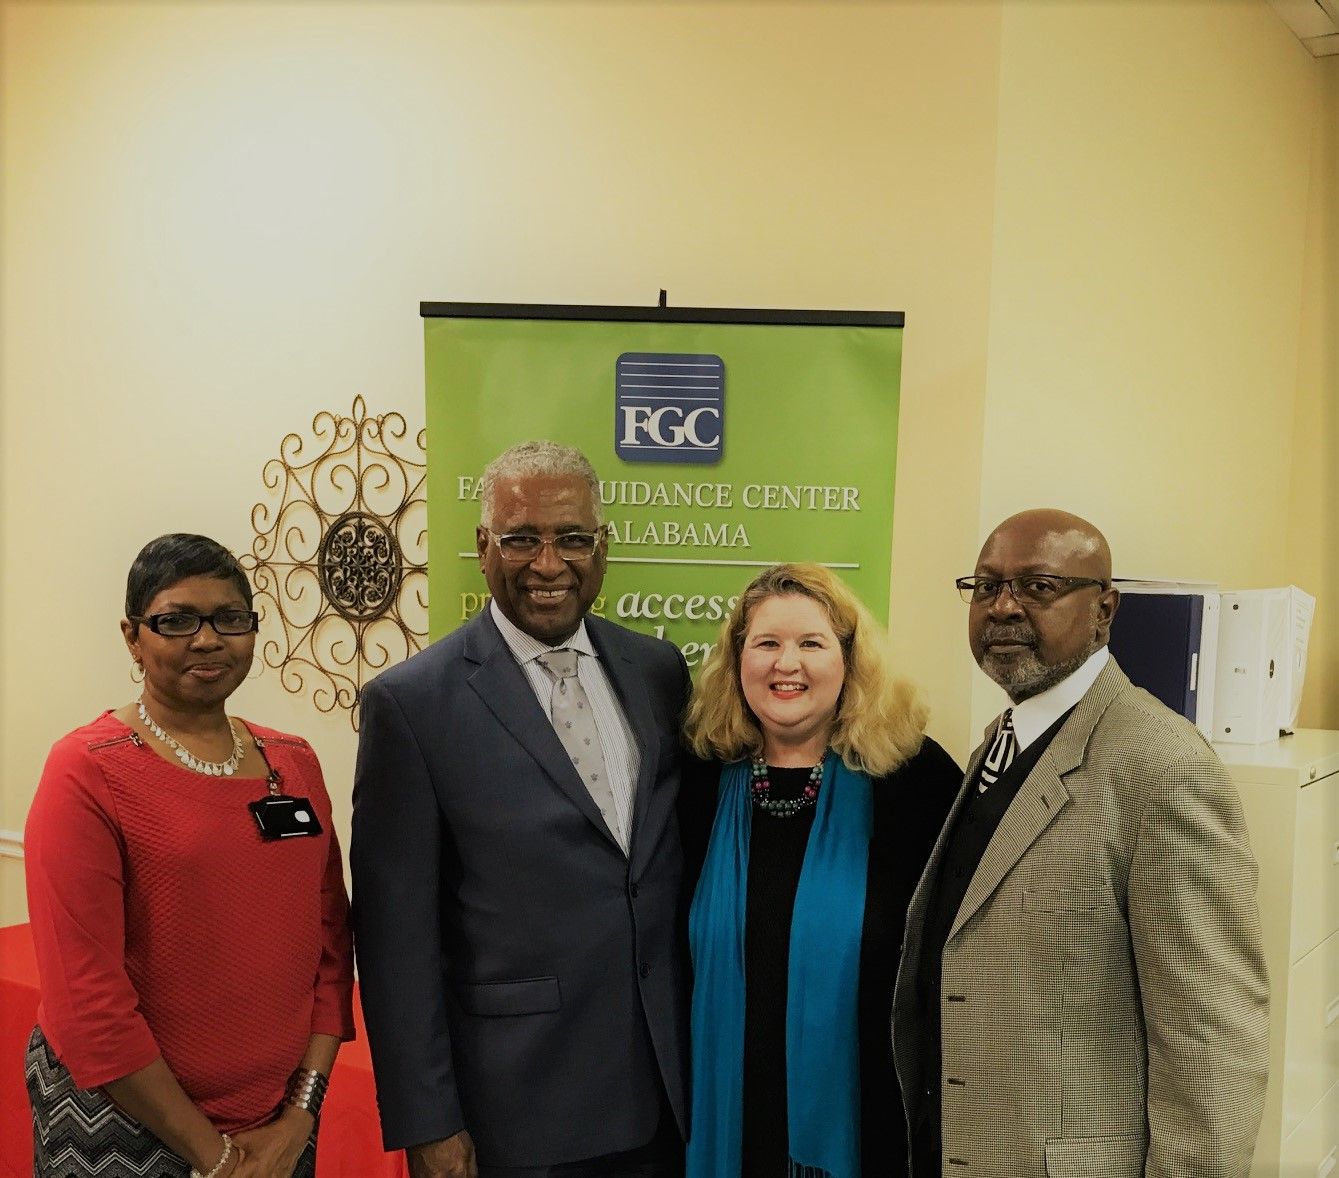 Pictured (L to R): Ms. Sybil L. Scarbrough, Mayor William A. Bell, Sr., Ms. Regina G. Allison, and Mr. Lorenza Thomas